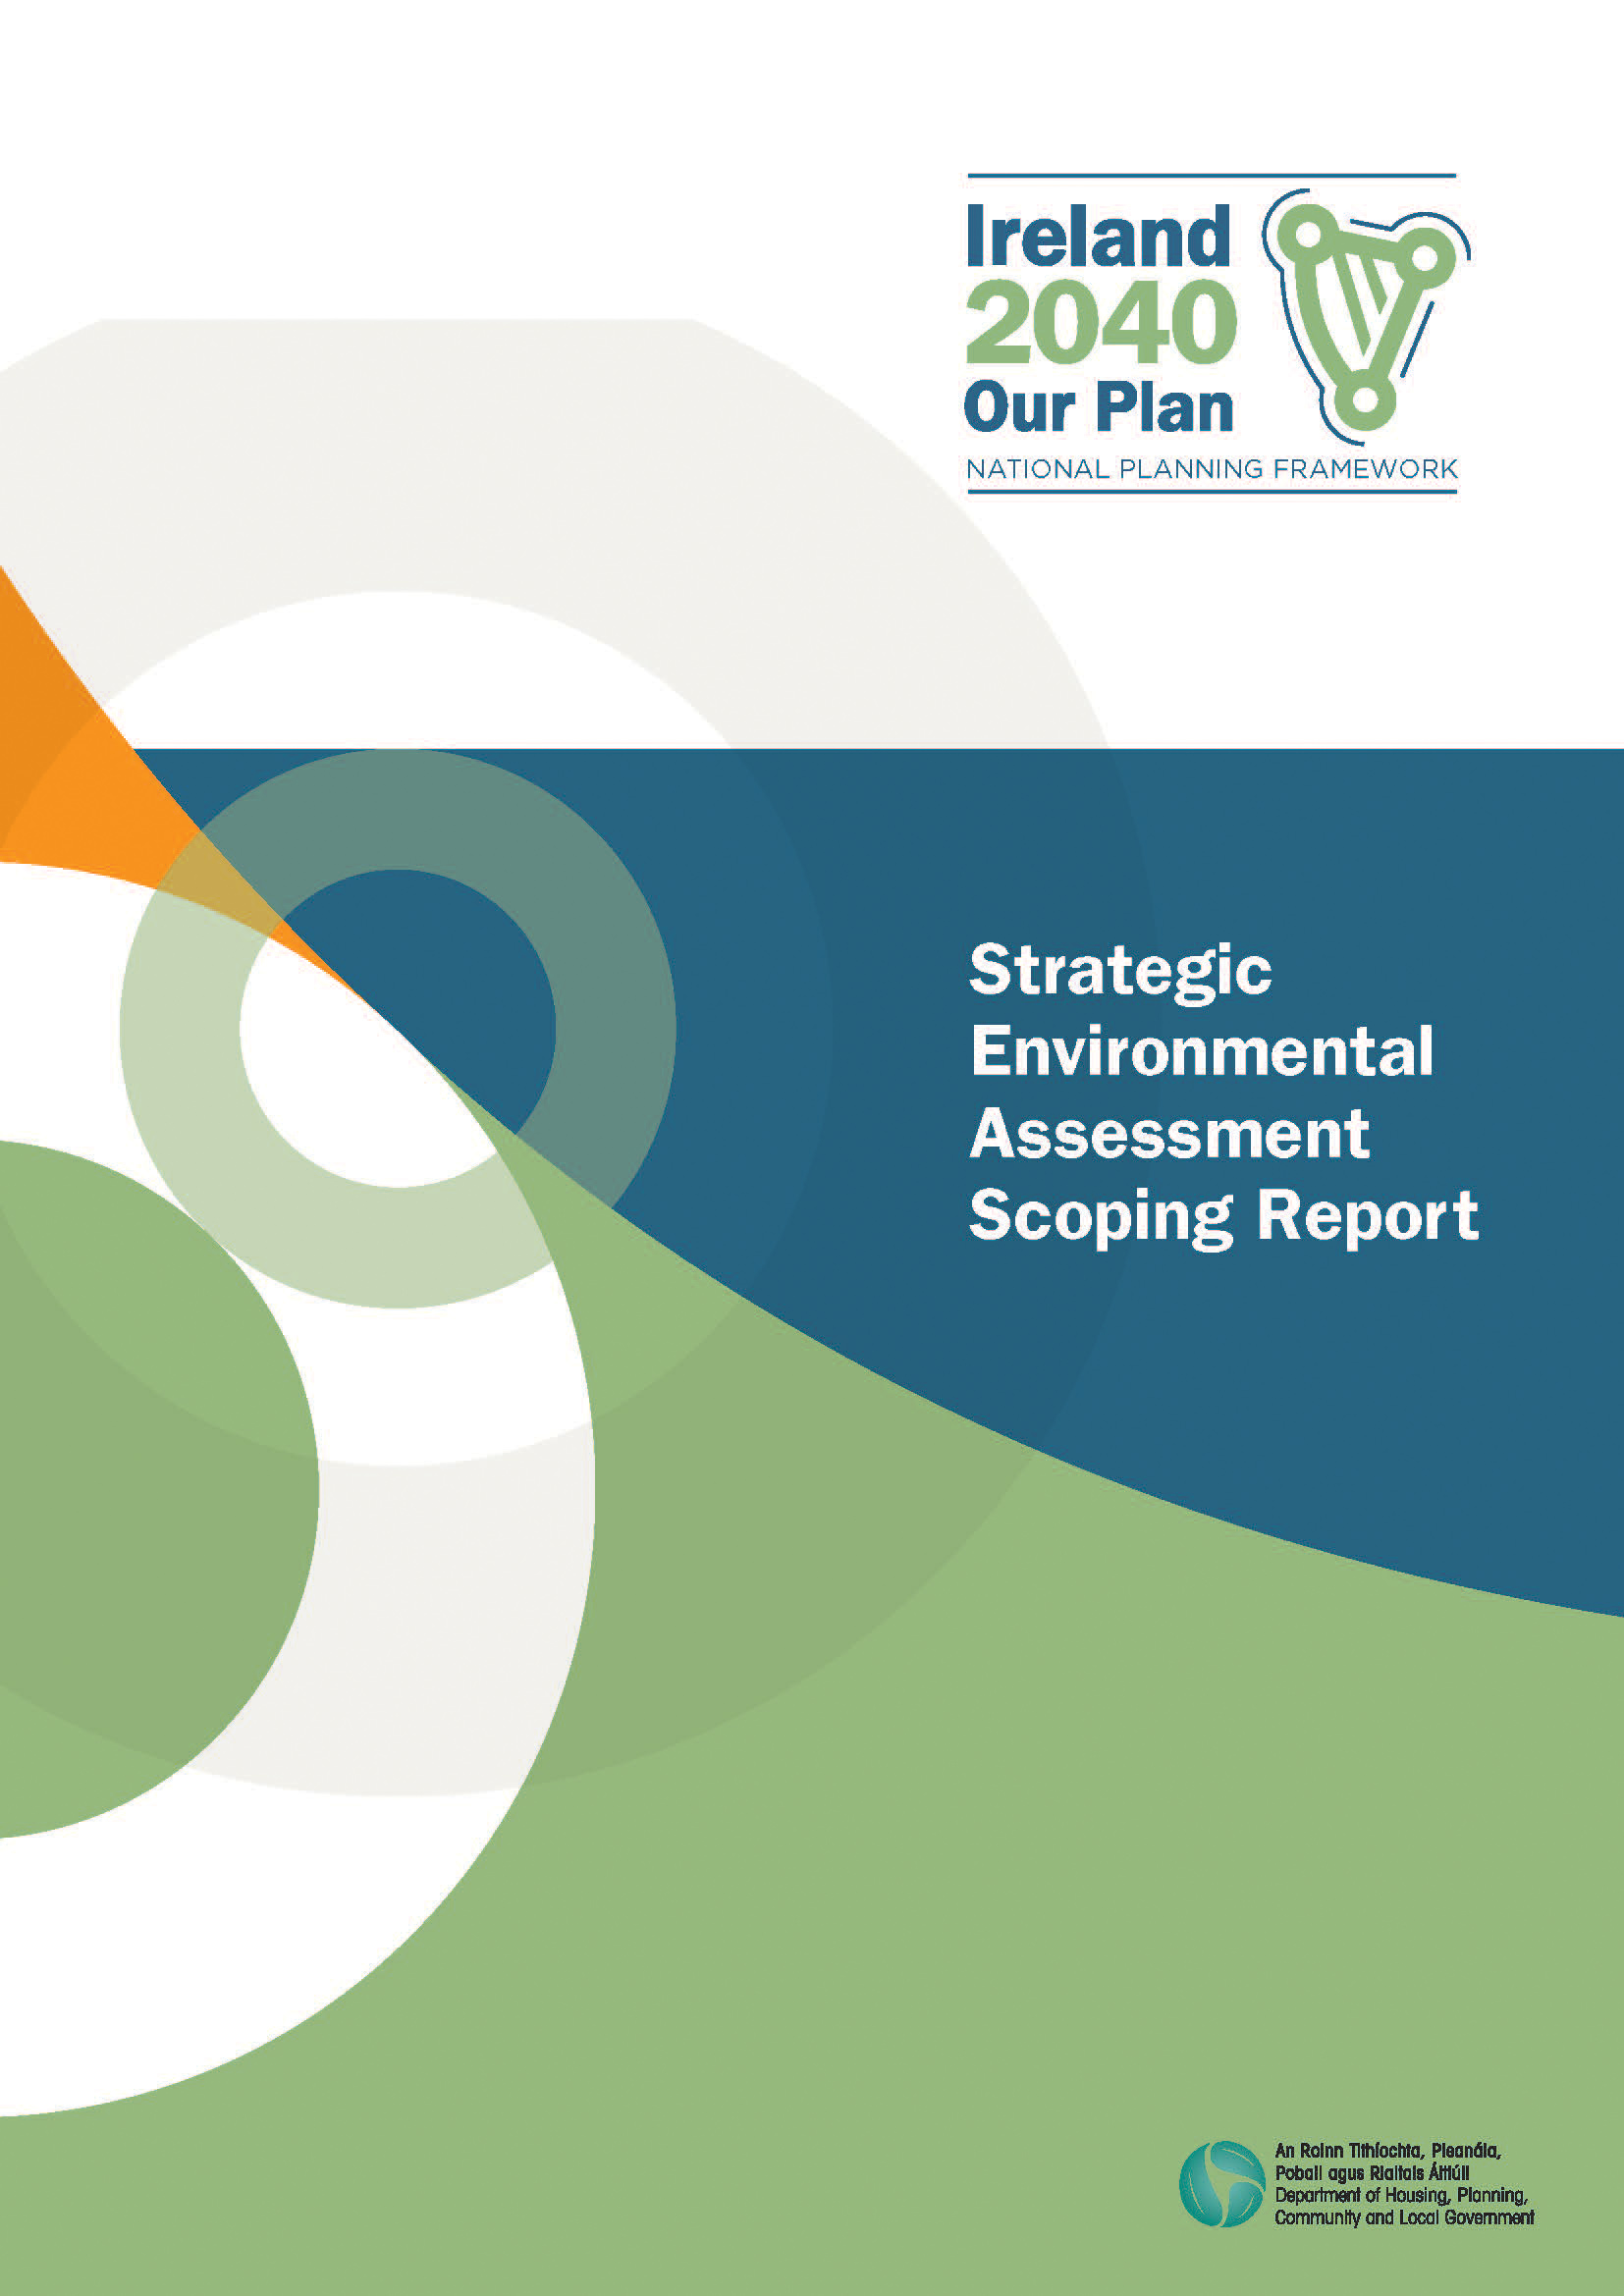 Strategic Environmental Assessment Scoping Report COVER